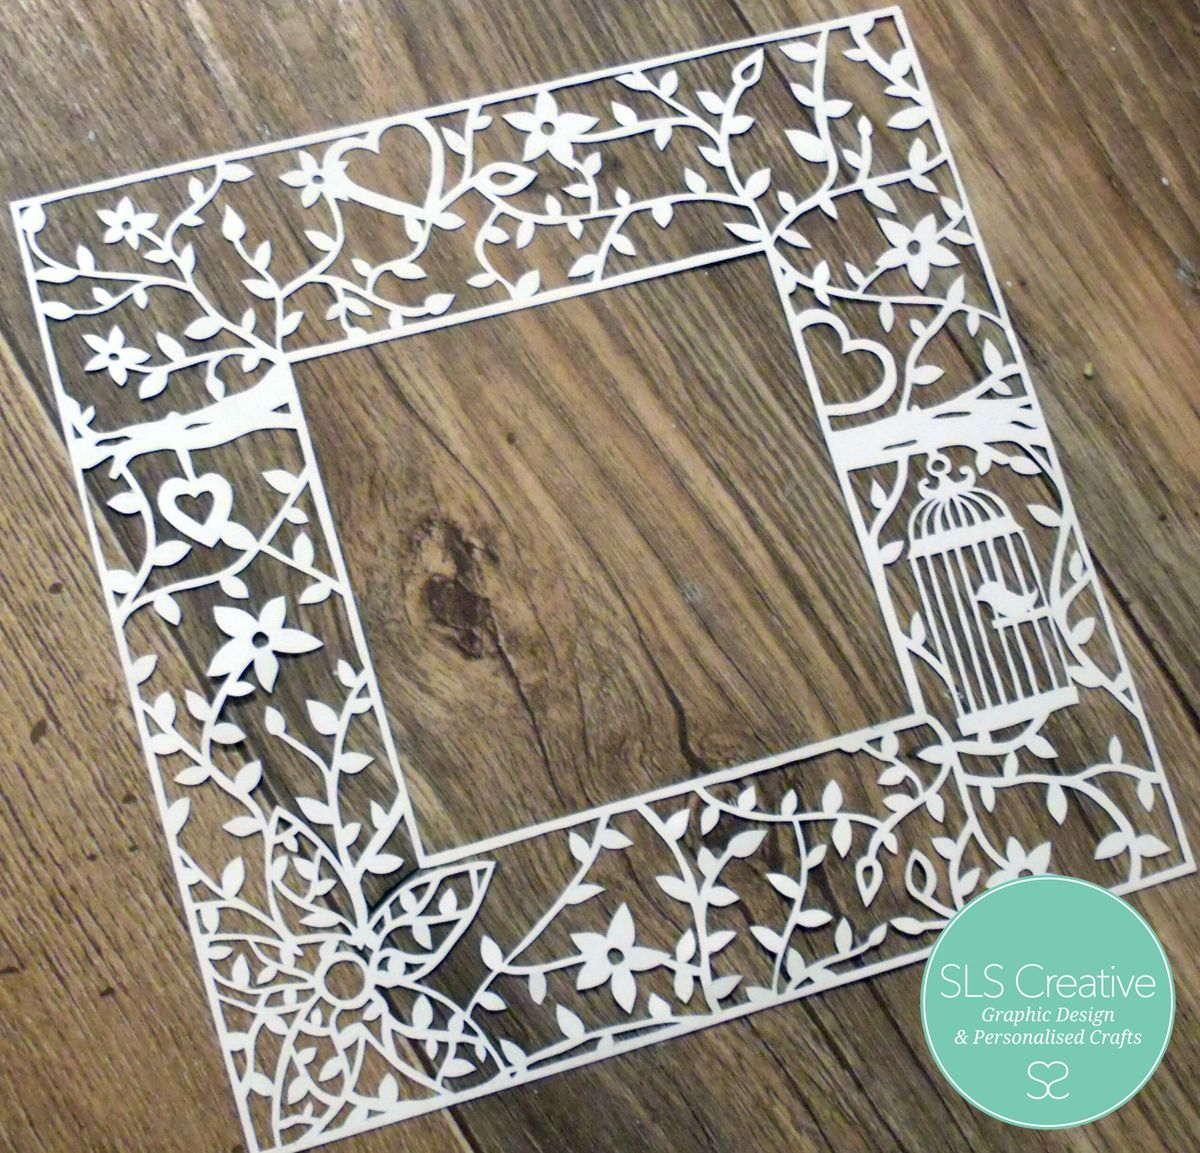 Free Paper Cut Template: Let's Celebrate | Papercuts | Pinterest ...